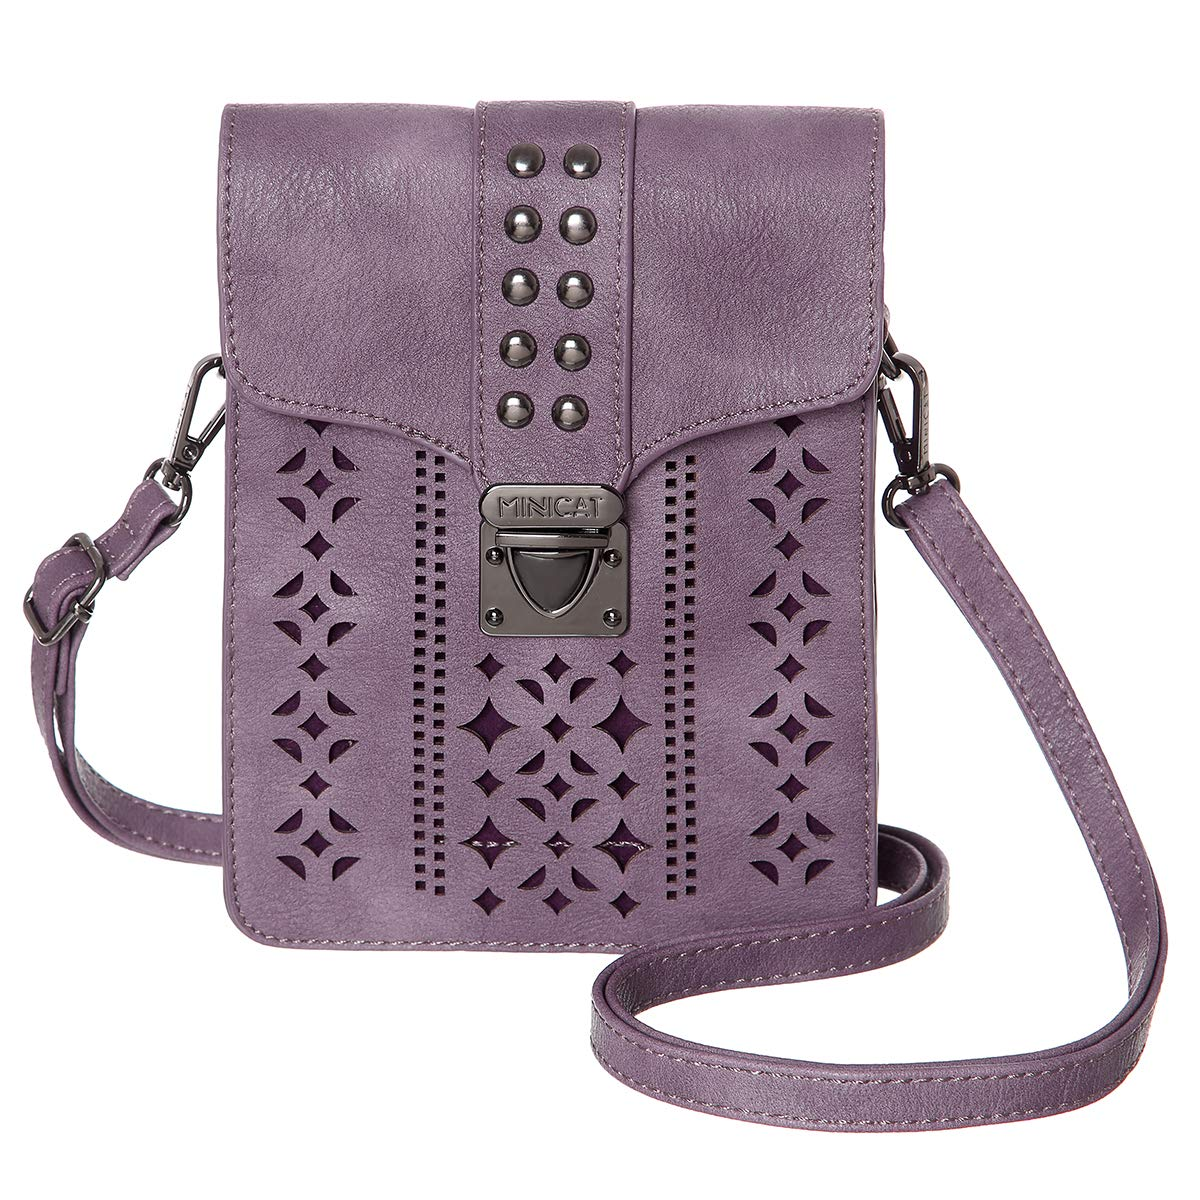 MINICAT Women RFID Blocking Small Crossbody Bags Cell Phone Purse Wallet With Credit Card Slots(Purple-thicker)